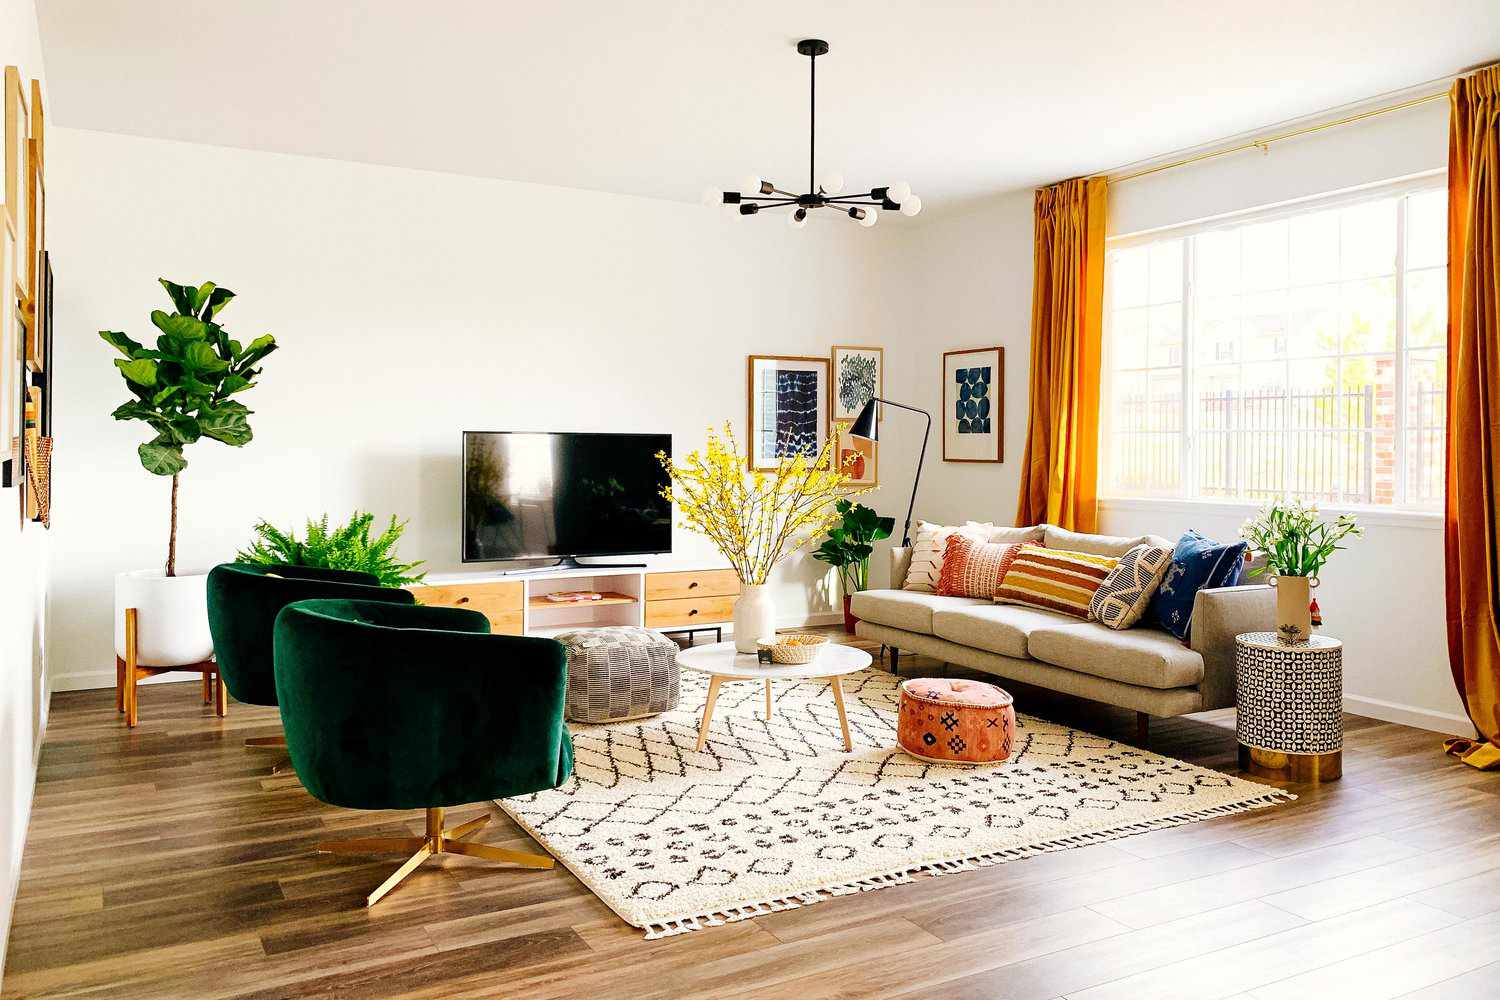 Moroccan rug and pouf in a living room